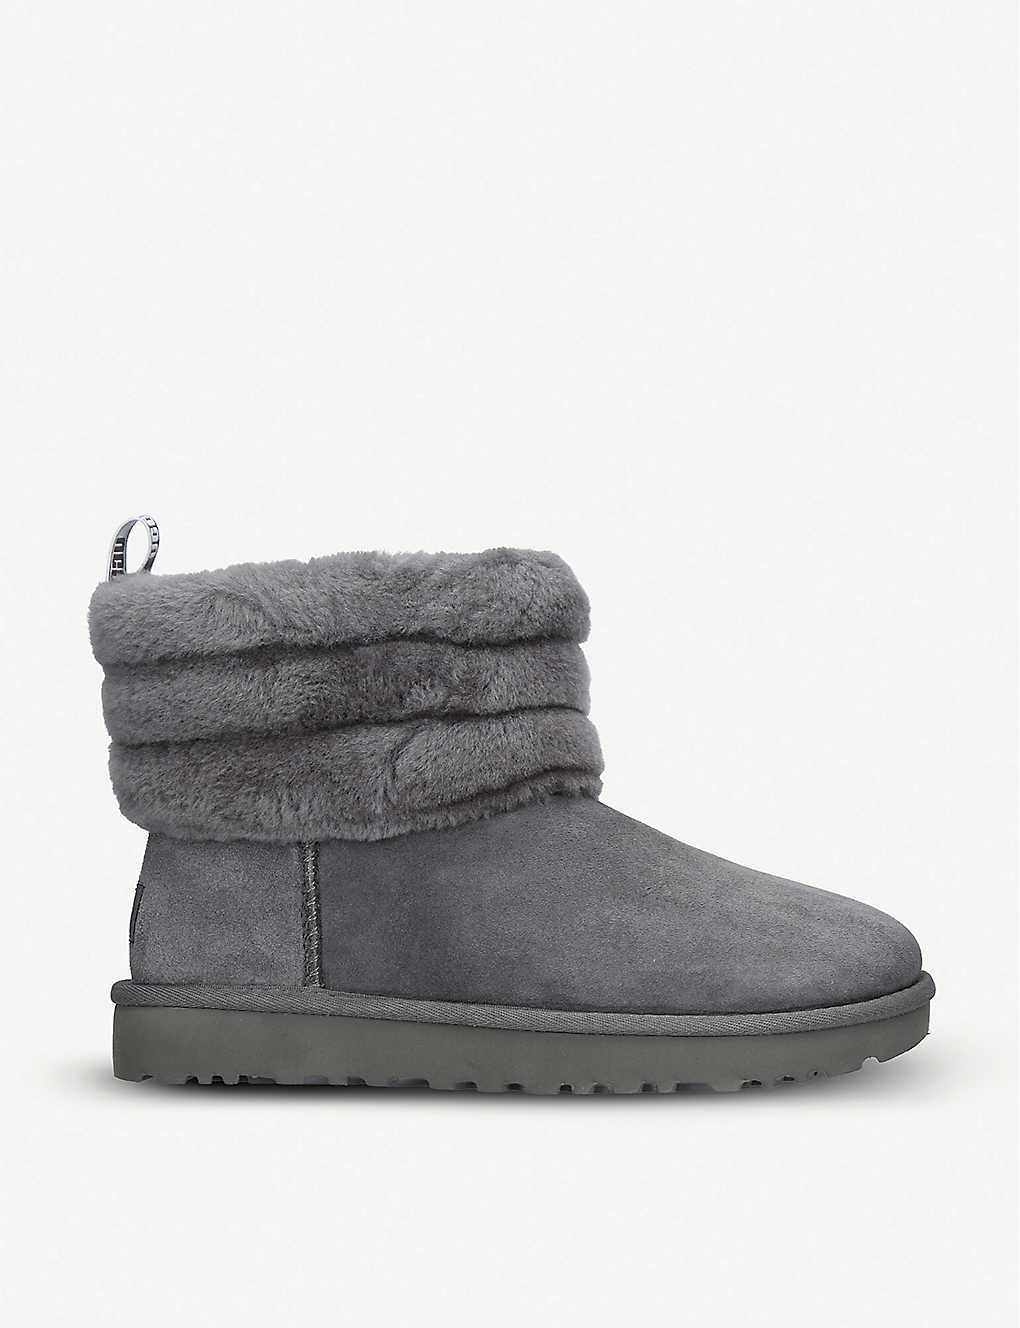 4b39385298f UGG - Fluff Mini Quilted suede and sheepskin boots | Selfridges.com